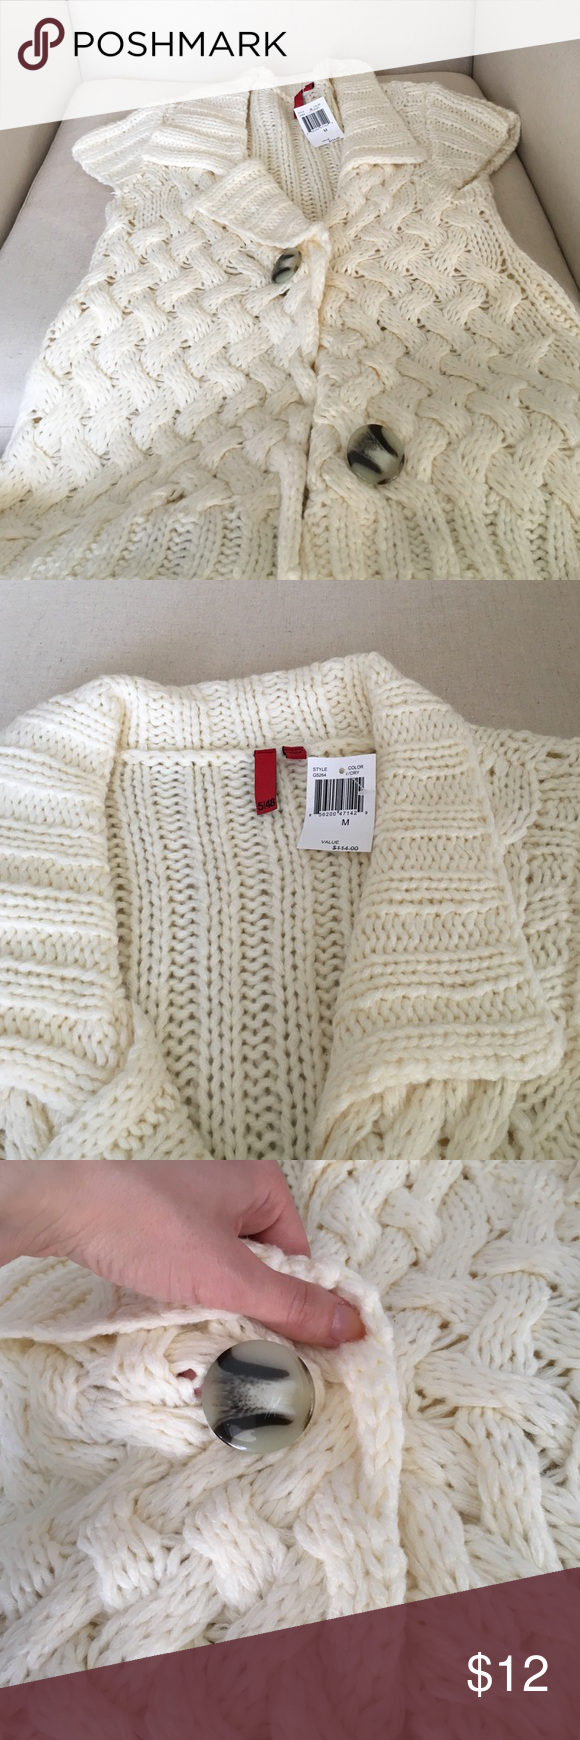 Cream colored sweater vest NWT | Short sleeves, Shorts and ...